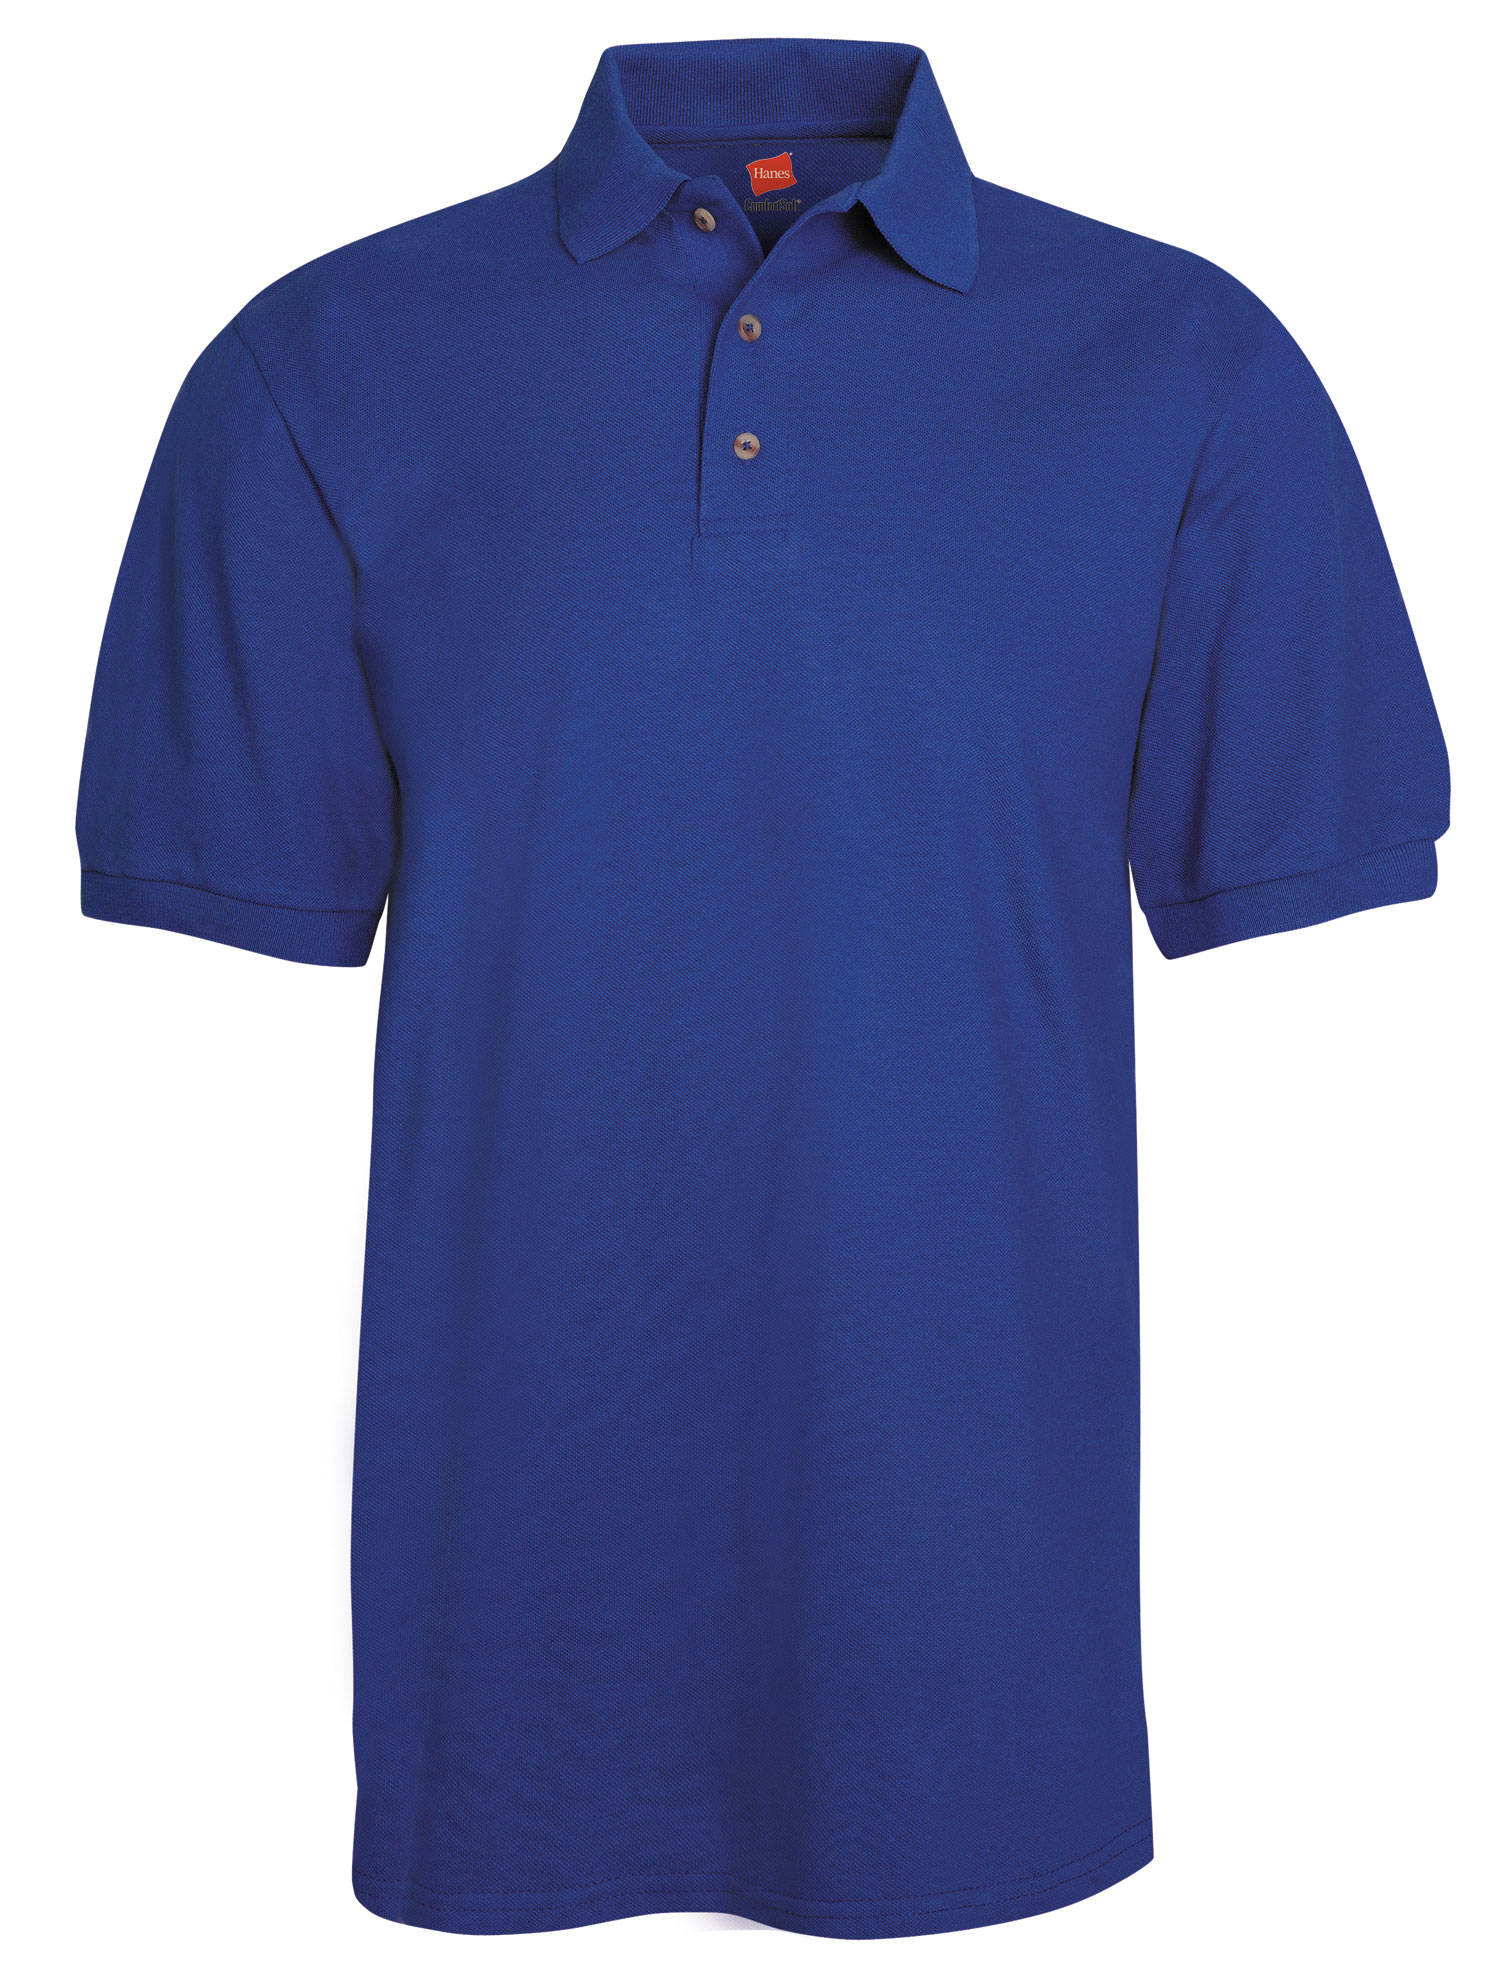 Hanes Mens 7 oz. ComfortSoft� Cotton Piqu� Polo